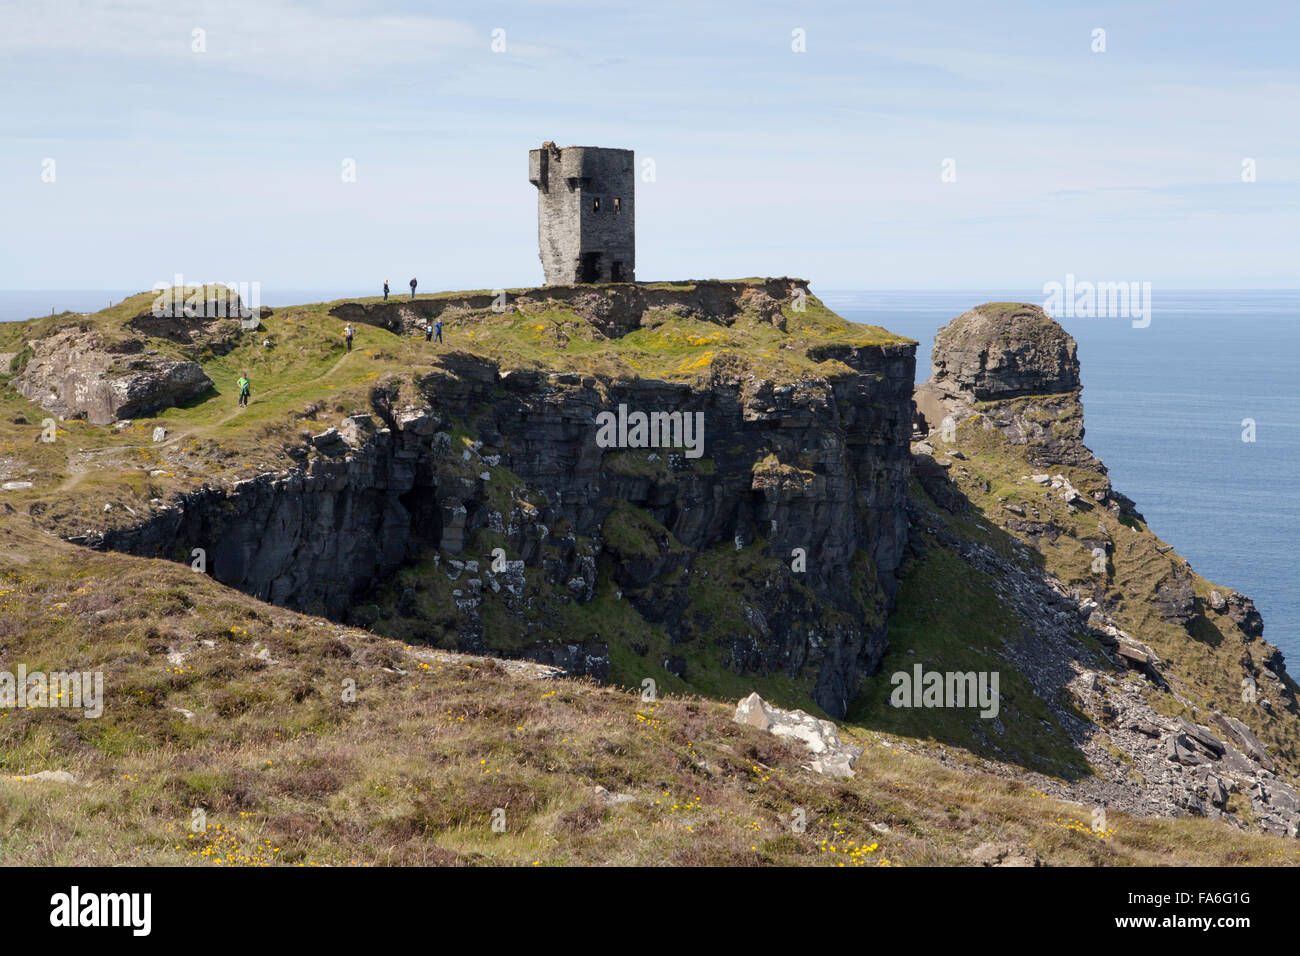 Hag's Head is the southerly point of the Cliffs of Moher - a popular tourist destination on the west coast of - Stock Image